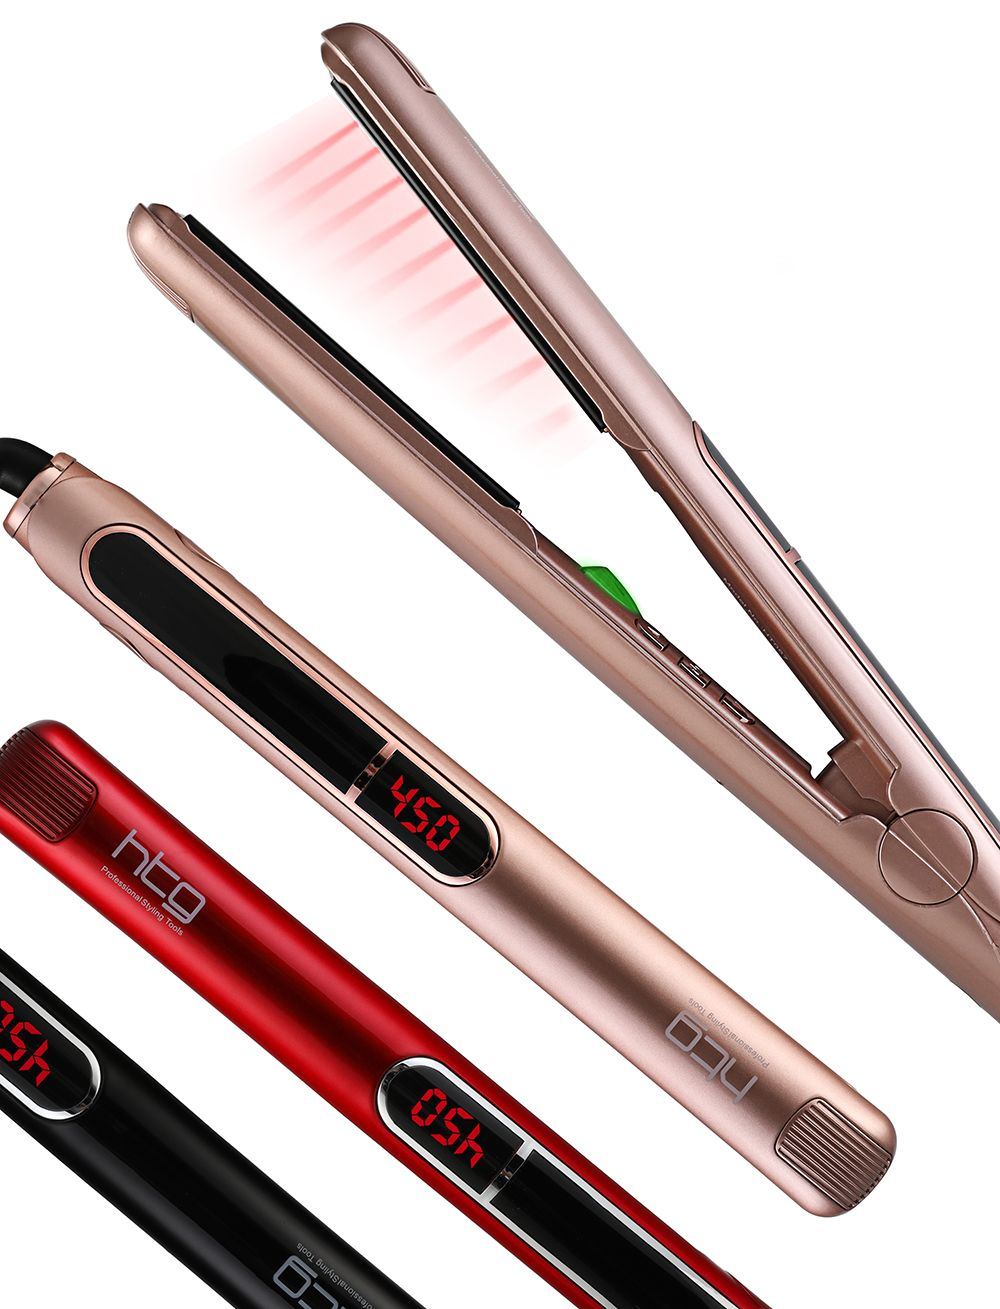 HTG Professional Hair Straightener Hair Flat Iron Negative ION Infrared Hair Straightener Hair straighting Iron LCD Display